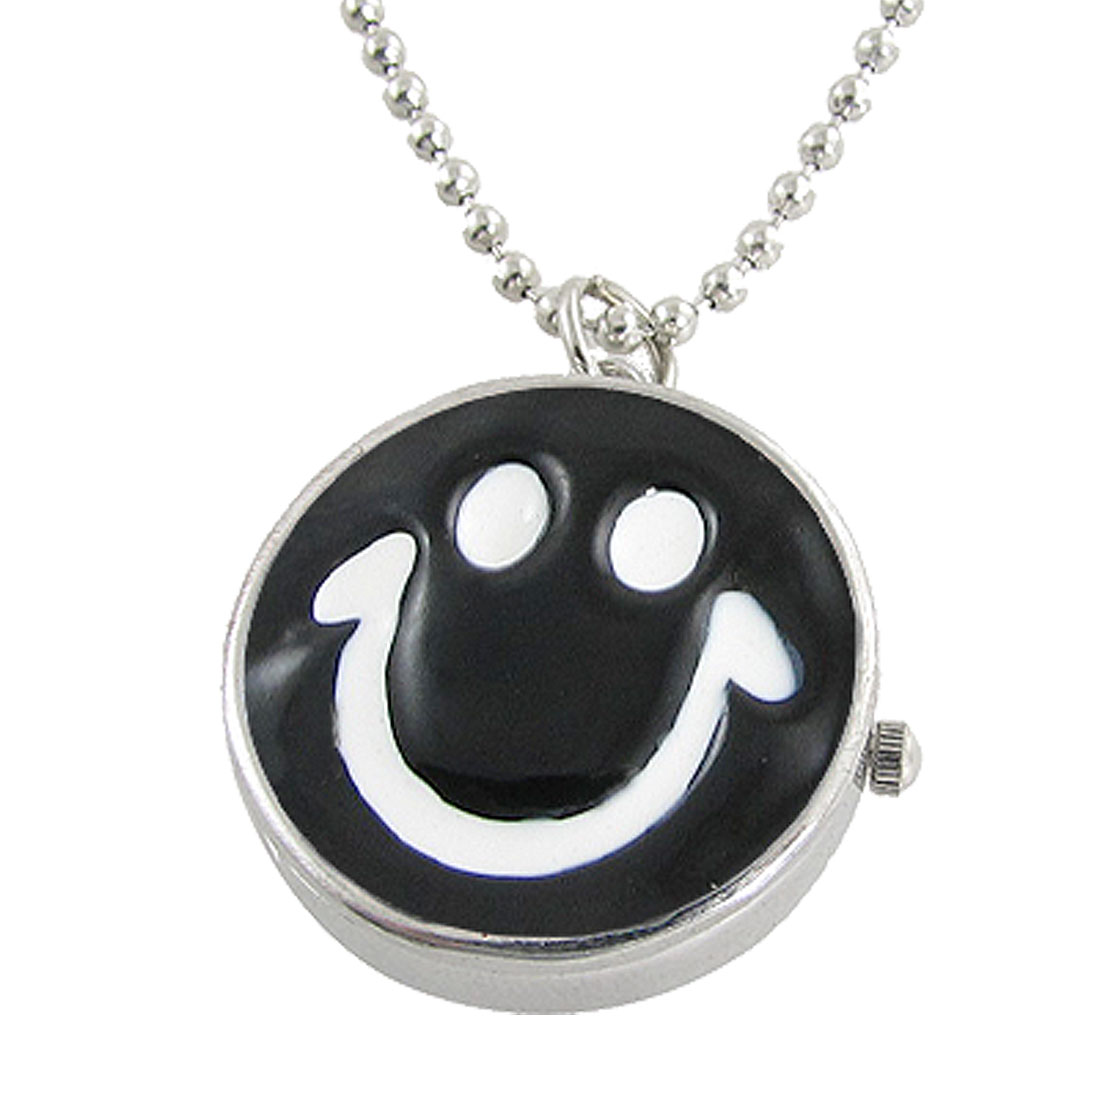 Ladies Black White Smile Face Shape Pendant Necklace Watch